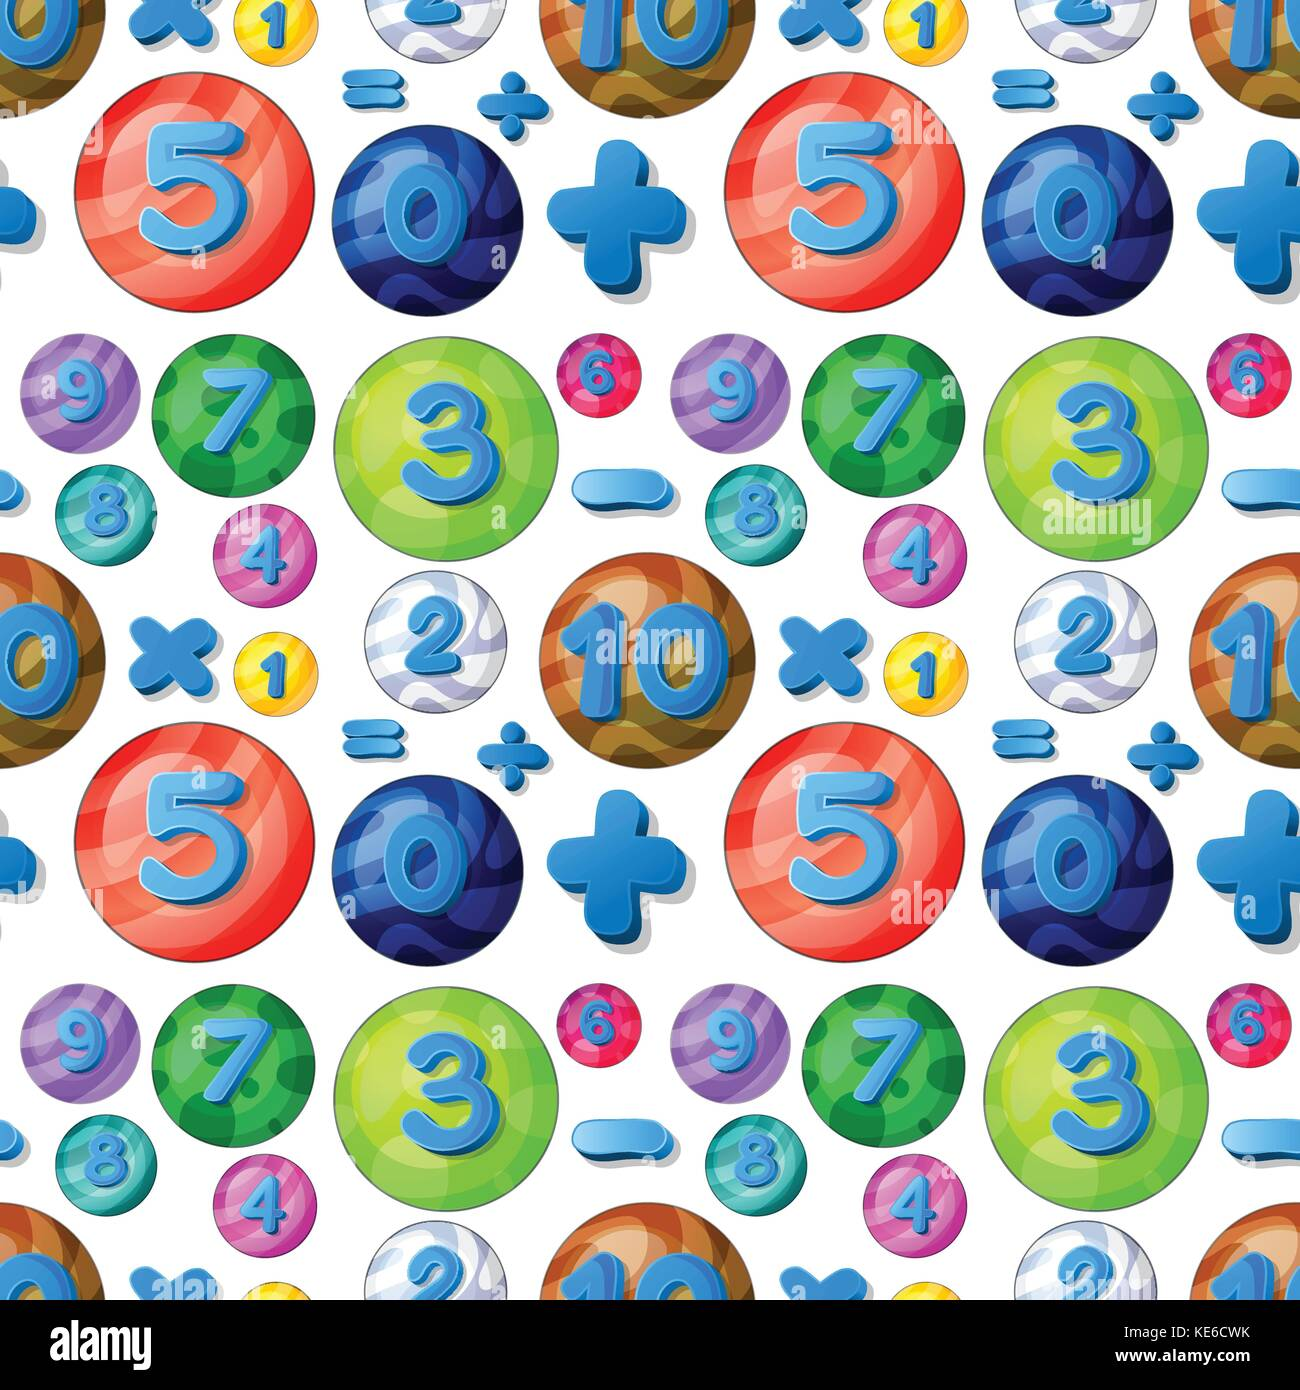 Seamless numbers in round bubbles illustration - Stock Image